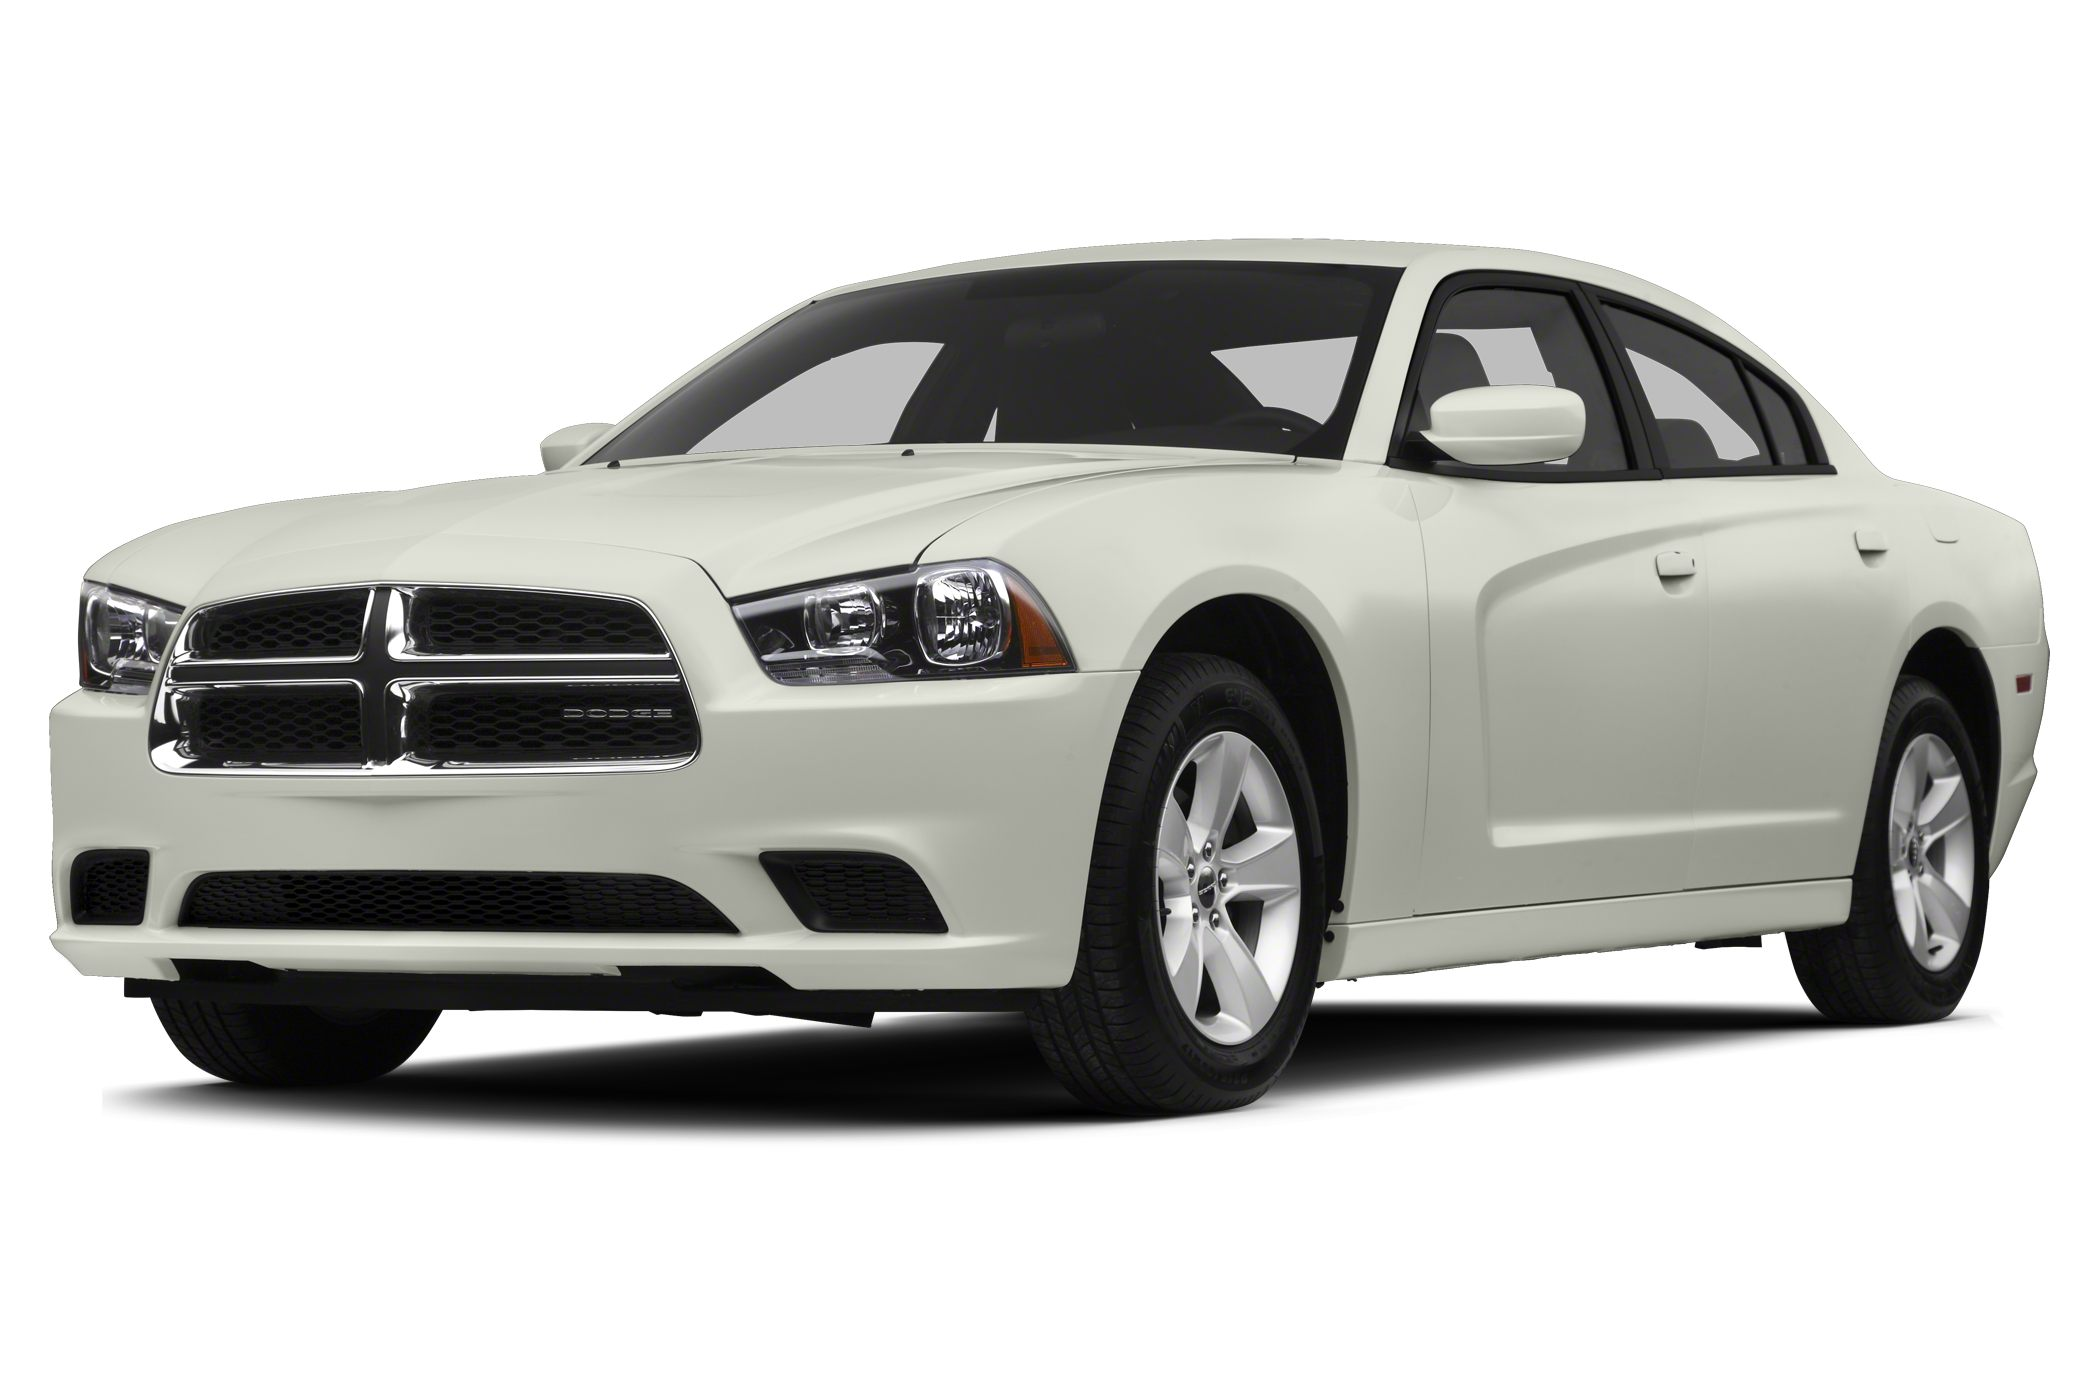 2013 Dodge Charger SXT Sedan for sale in Tacoma for $20,862 with 39,601 miles.